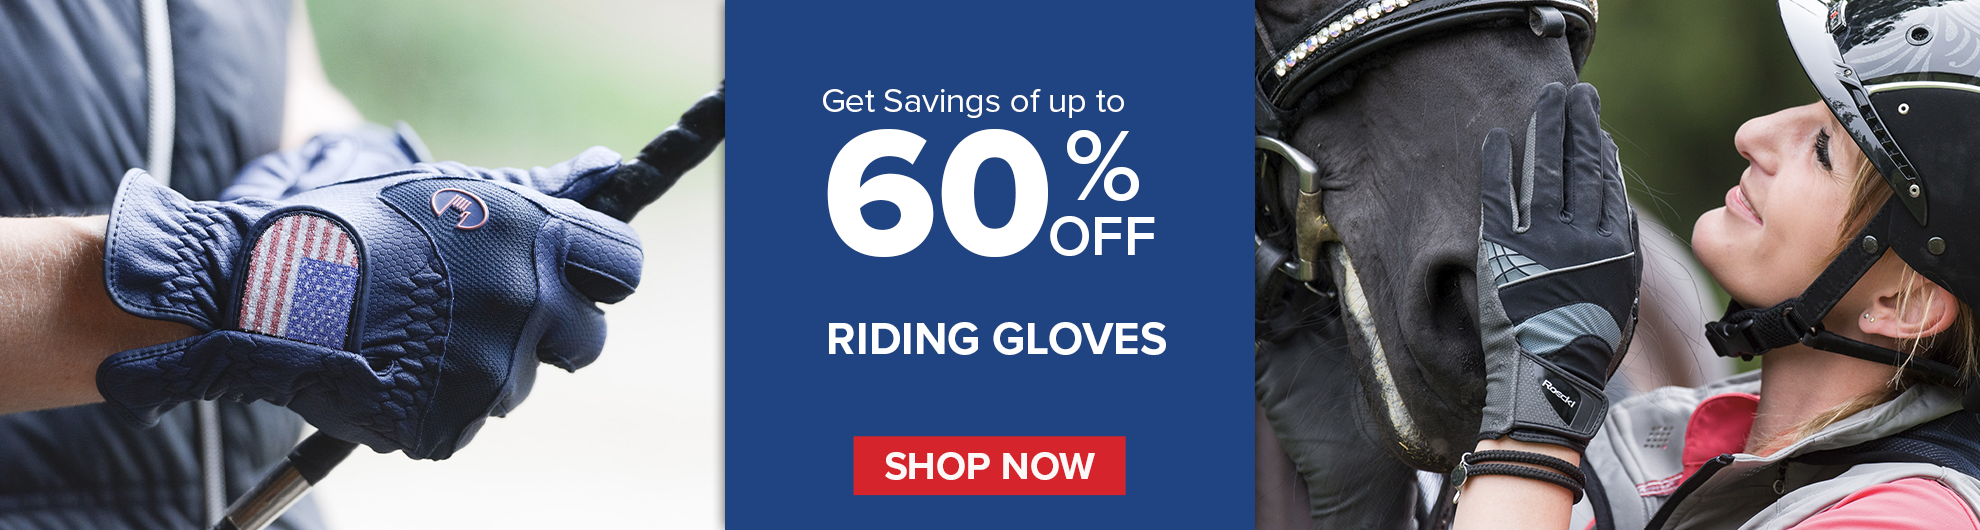 Save on Top Brand Riding Gloves on Bit of Britain